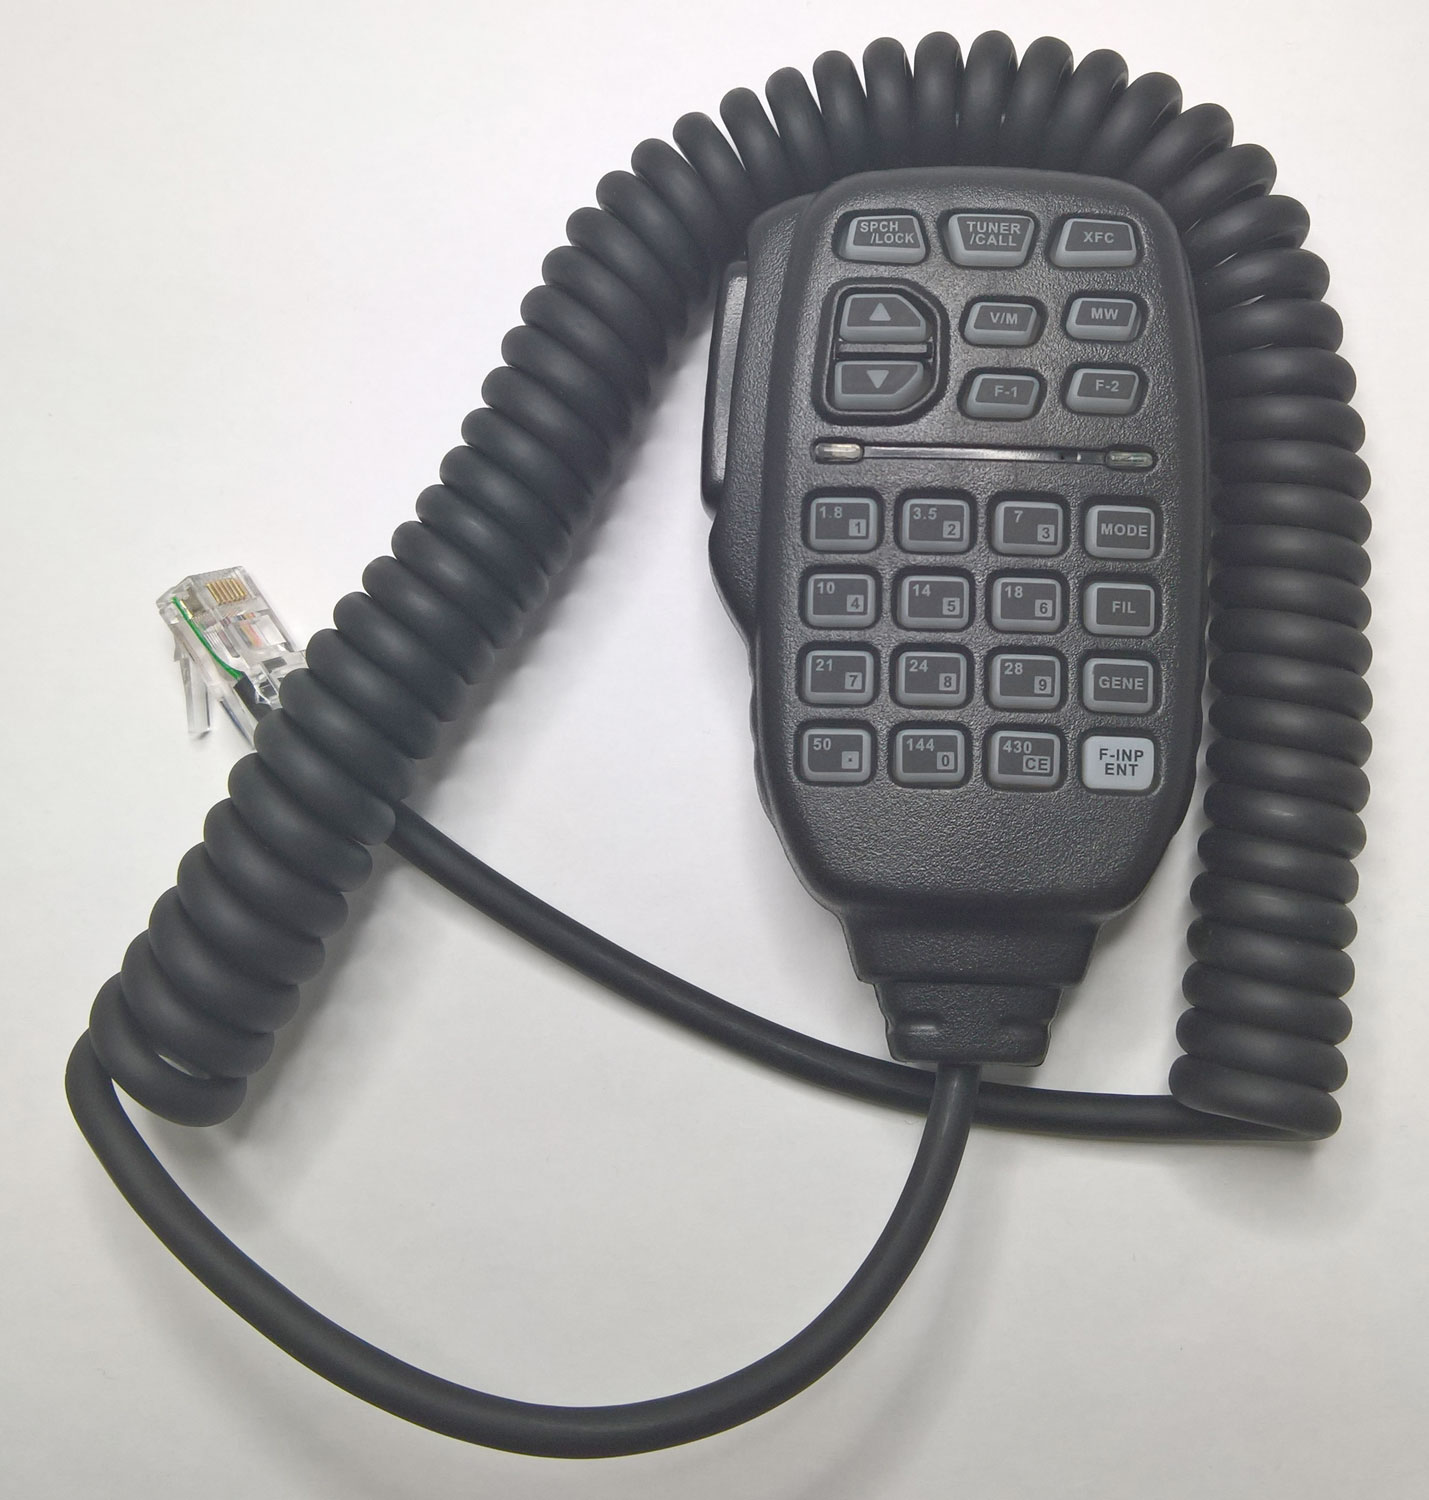 Replacement microphone for Xiegu G90 & X5105 transceivers